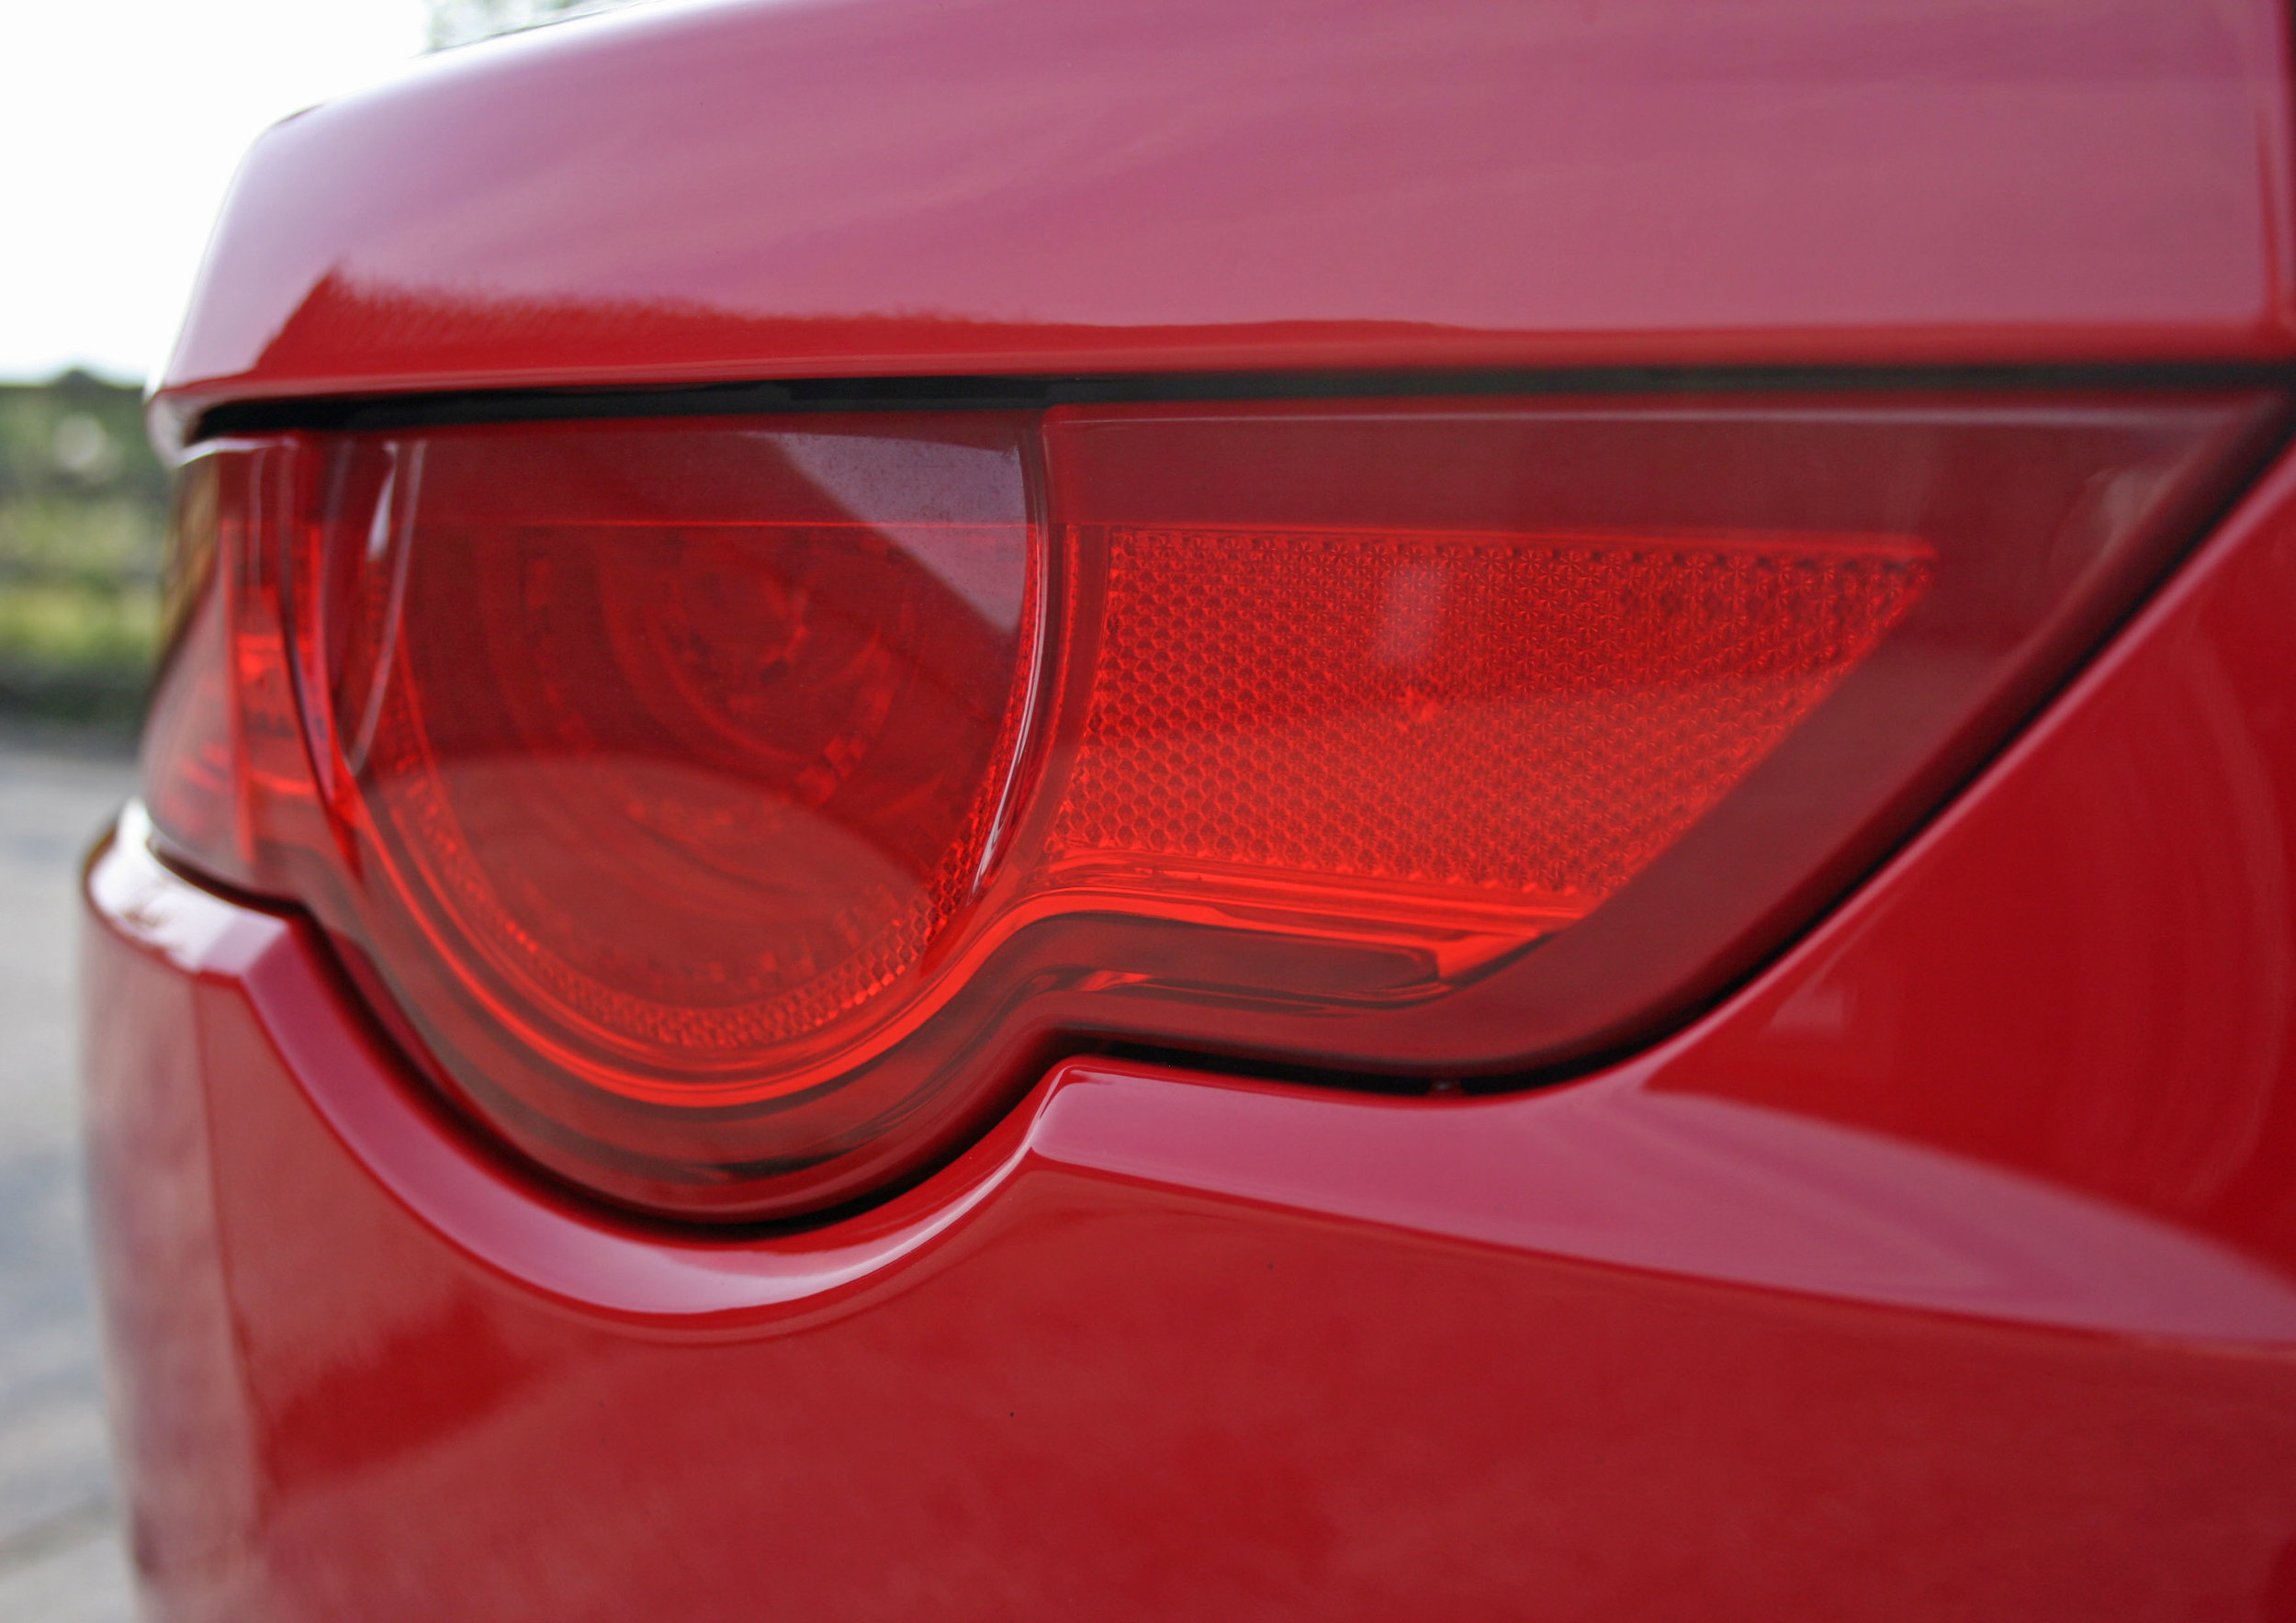 DETAIL REAR LIGHT 2.jpg